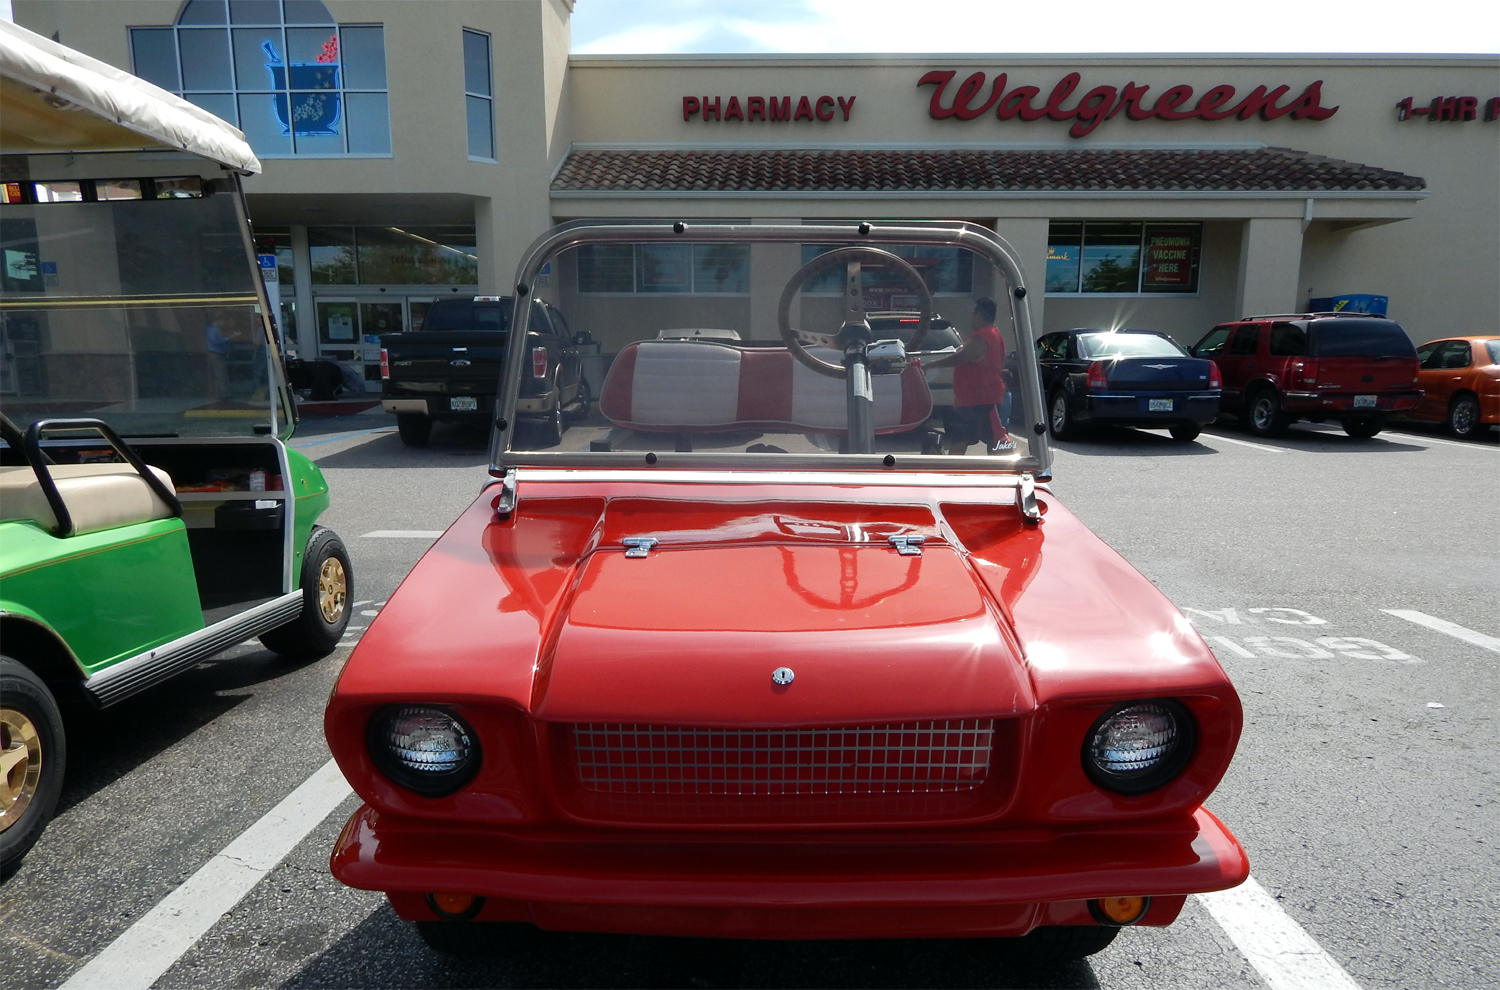 Classic Mustang parked at Walgreens N Pebble Beach Blvd, Sun City Center, Florida [photo by staff]